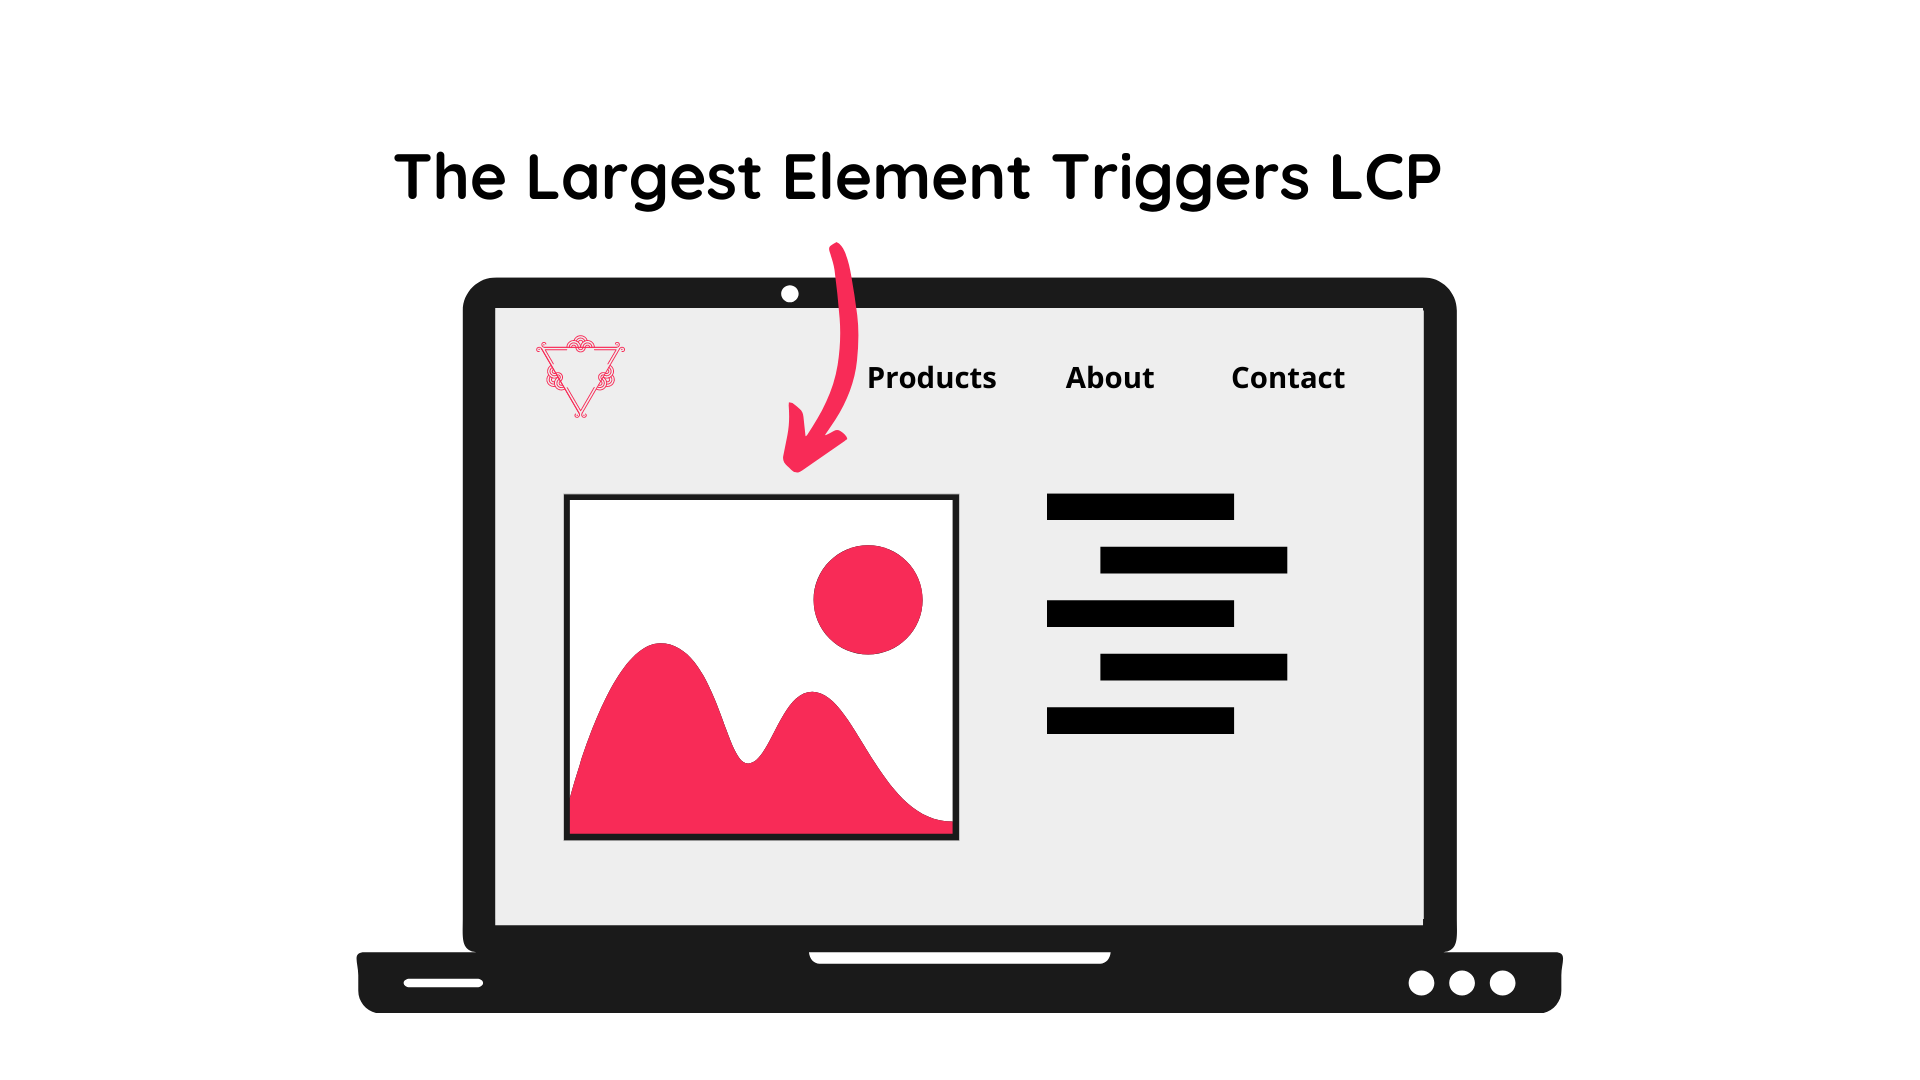 Largest element triggers LCP